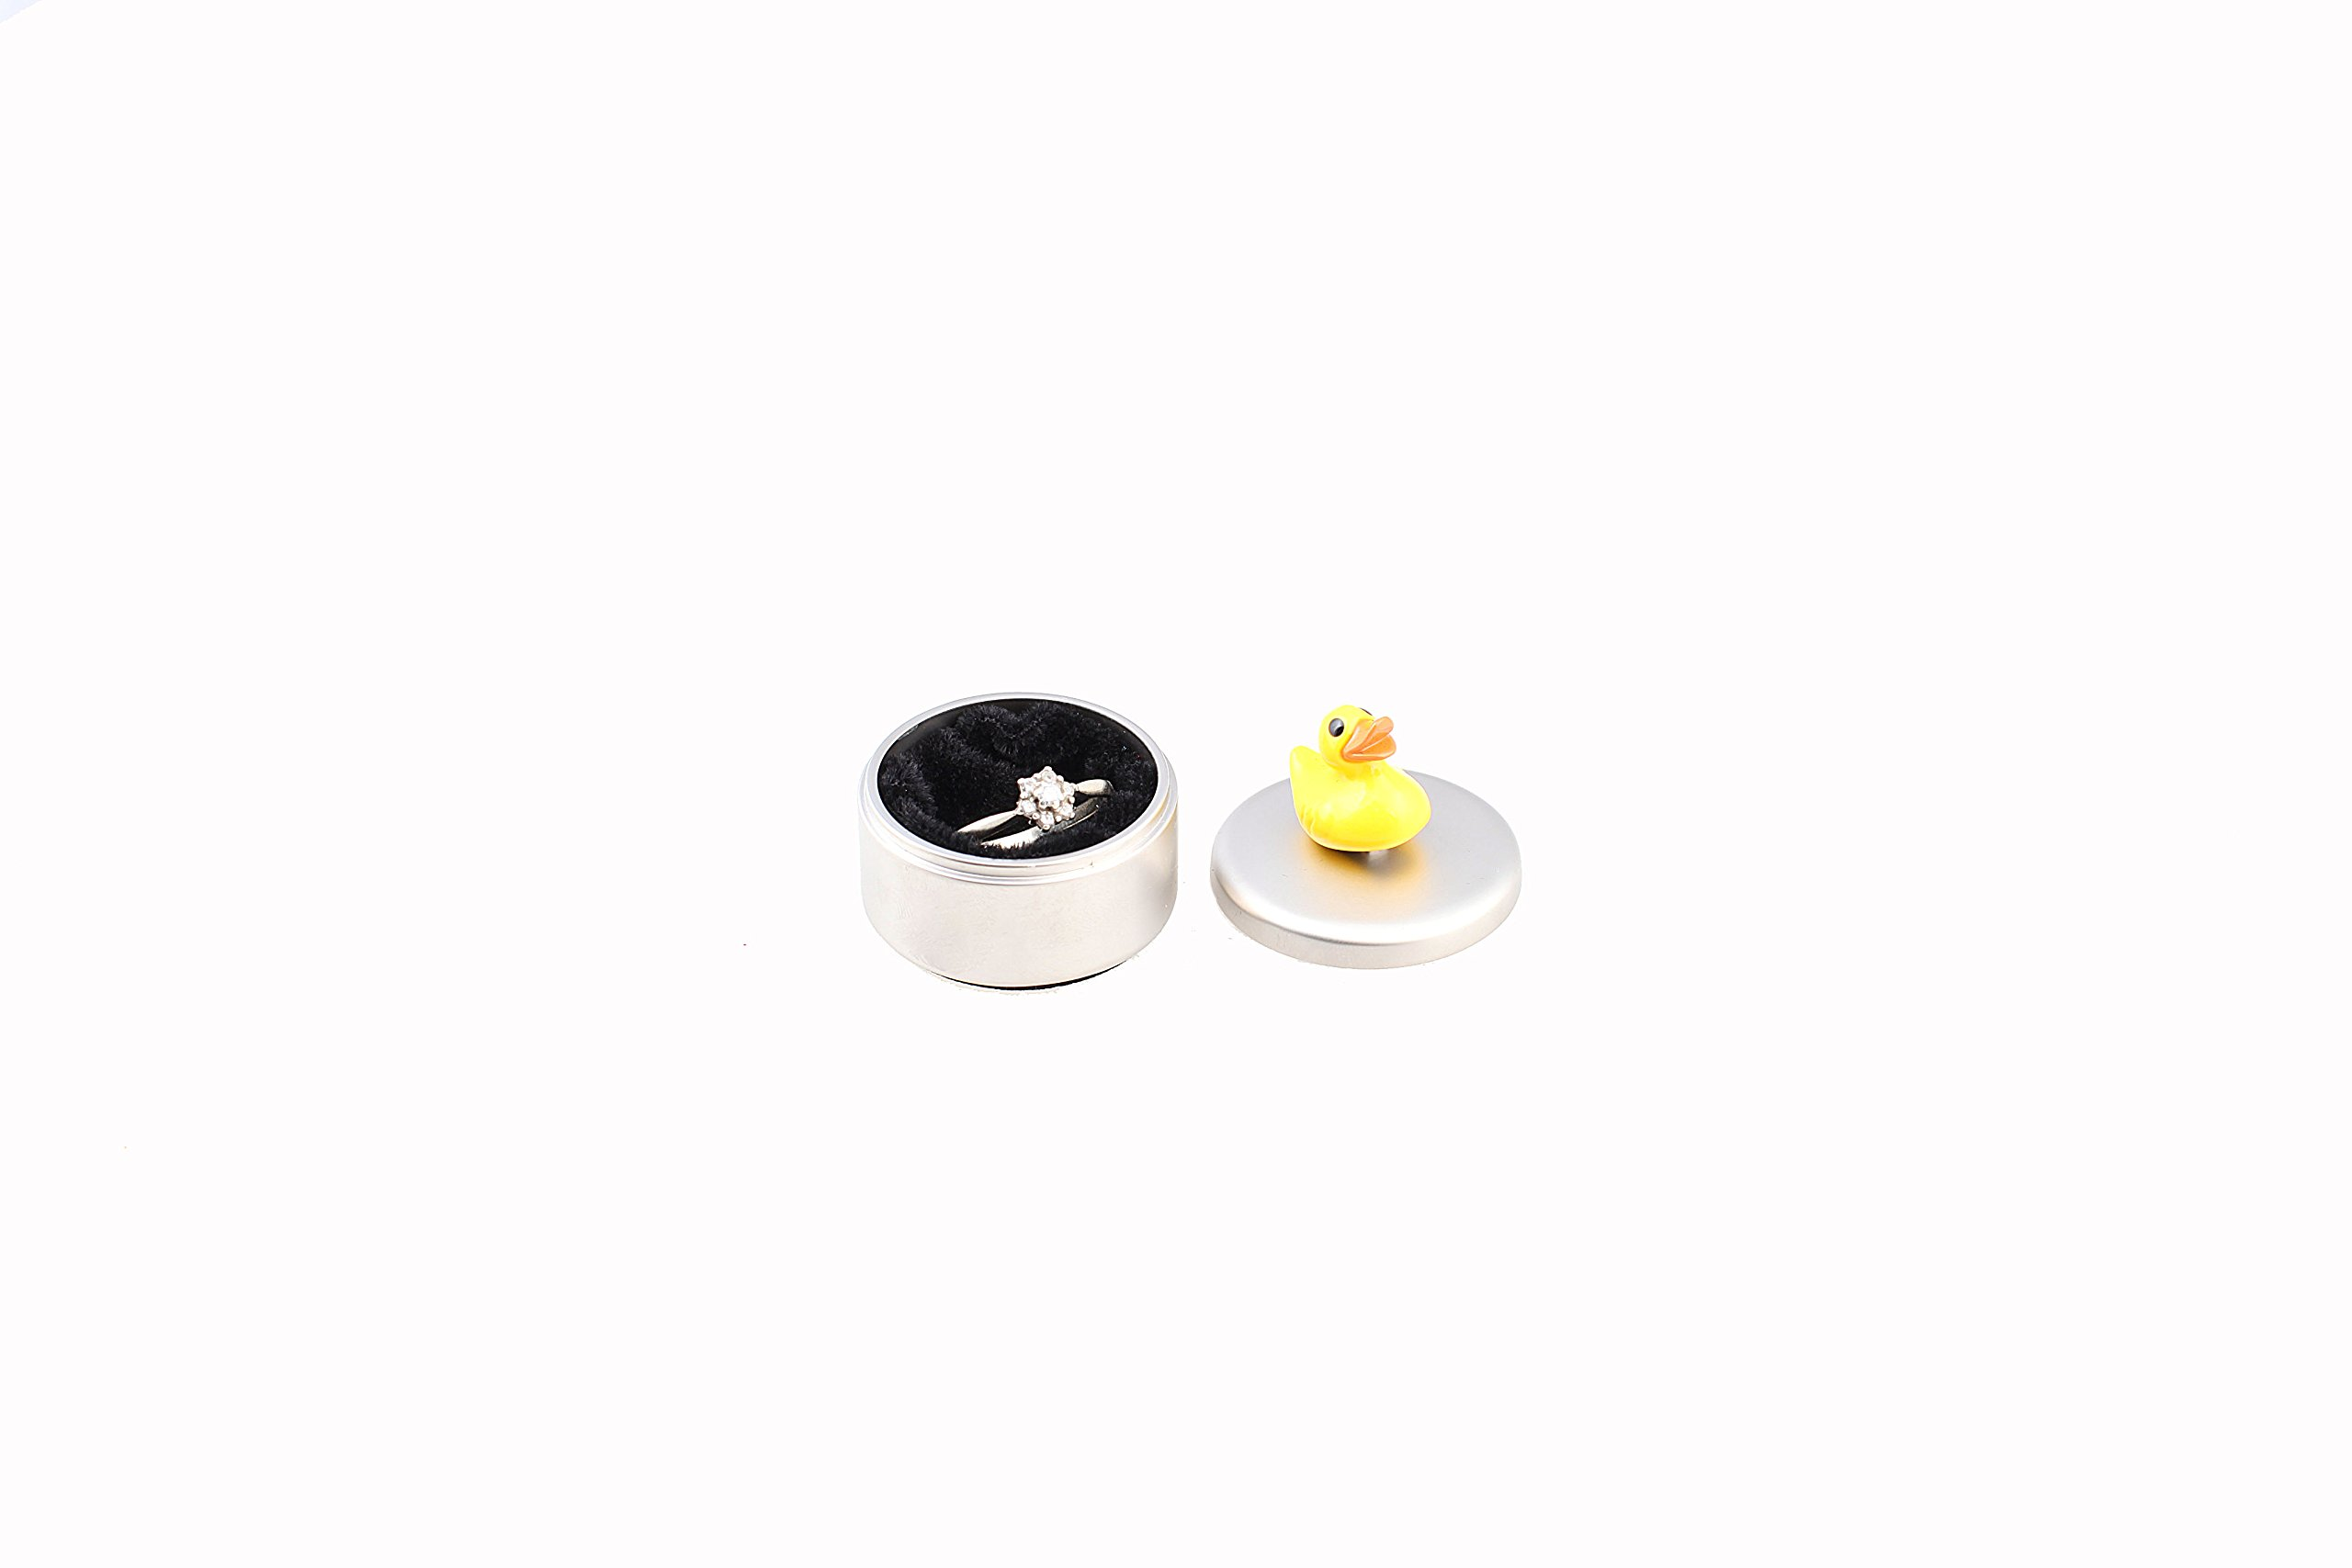 NGNG Tooth Ring Stainless Steel Box Holder Baby Teeth Storage Box - Duck by NGNG (Image #2)